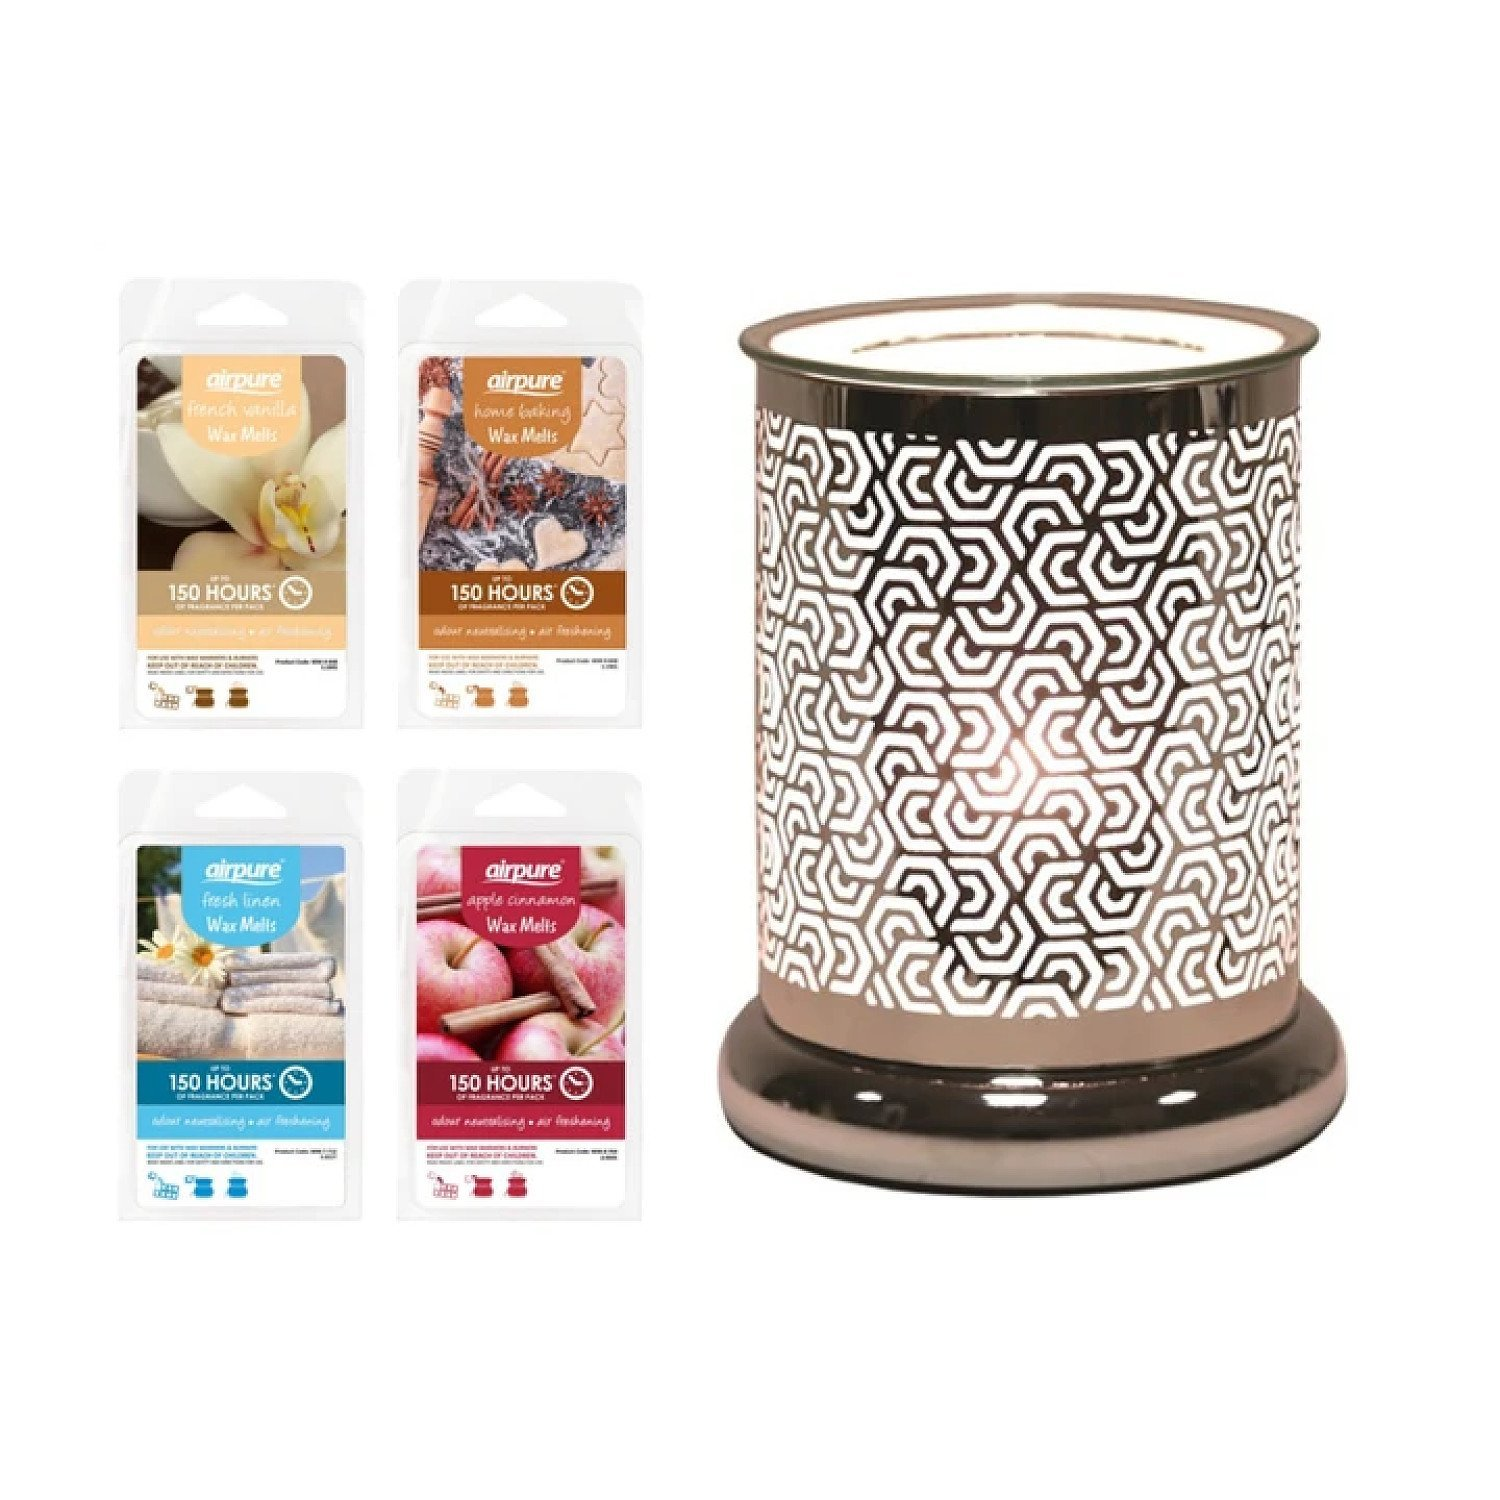 Hexagonal Cylinder - Wax Melt Burner Includes Pack of Wax Melts £29.99 Free Postage